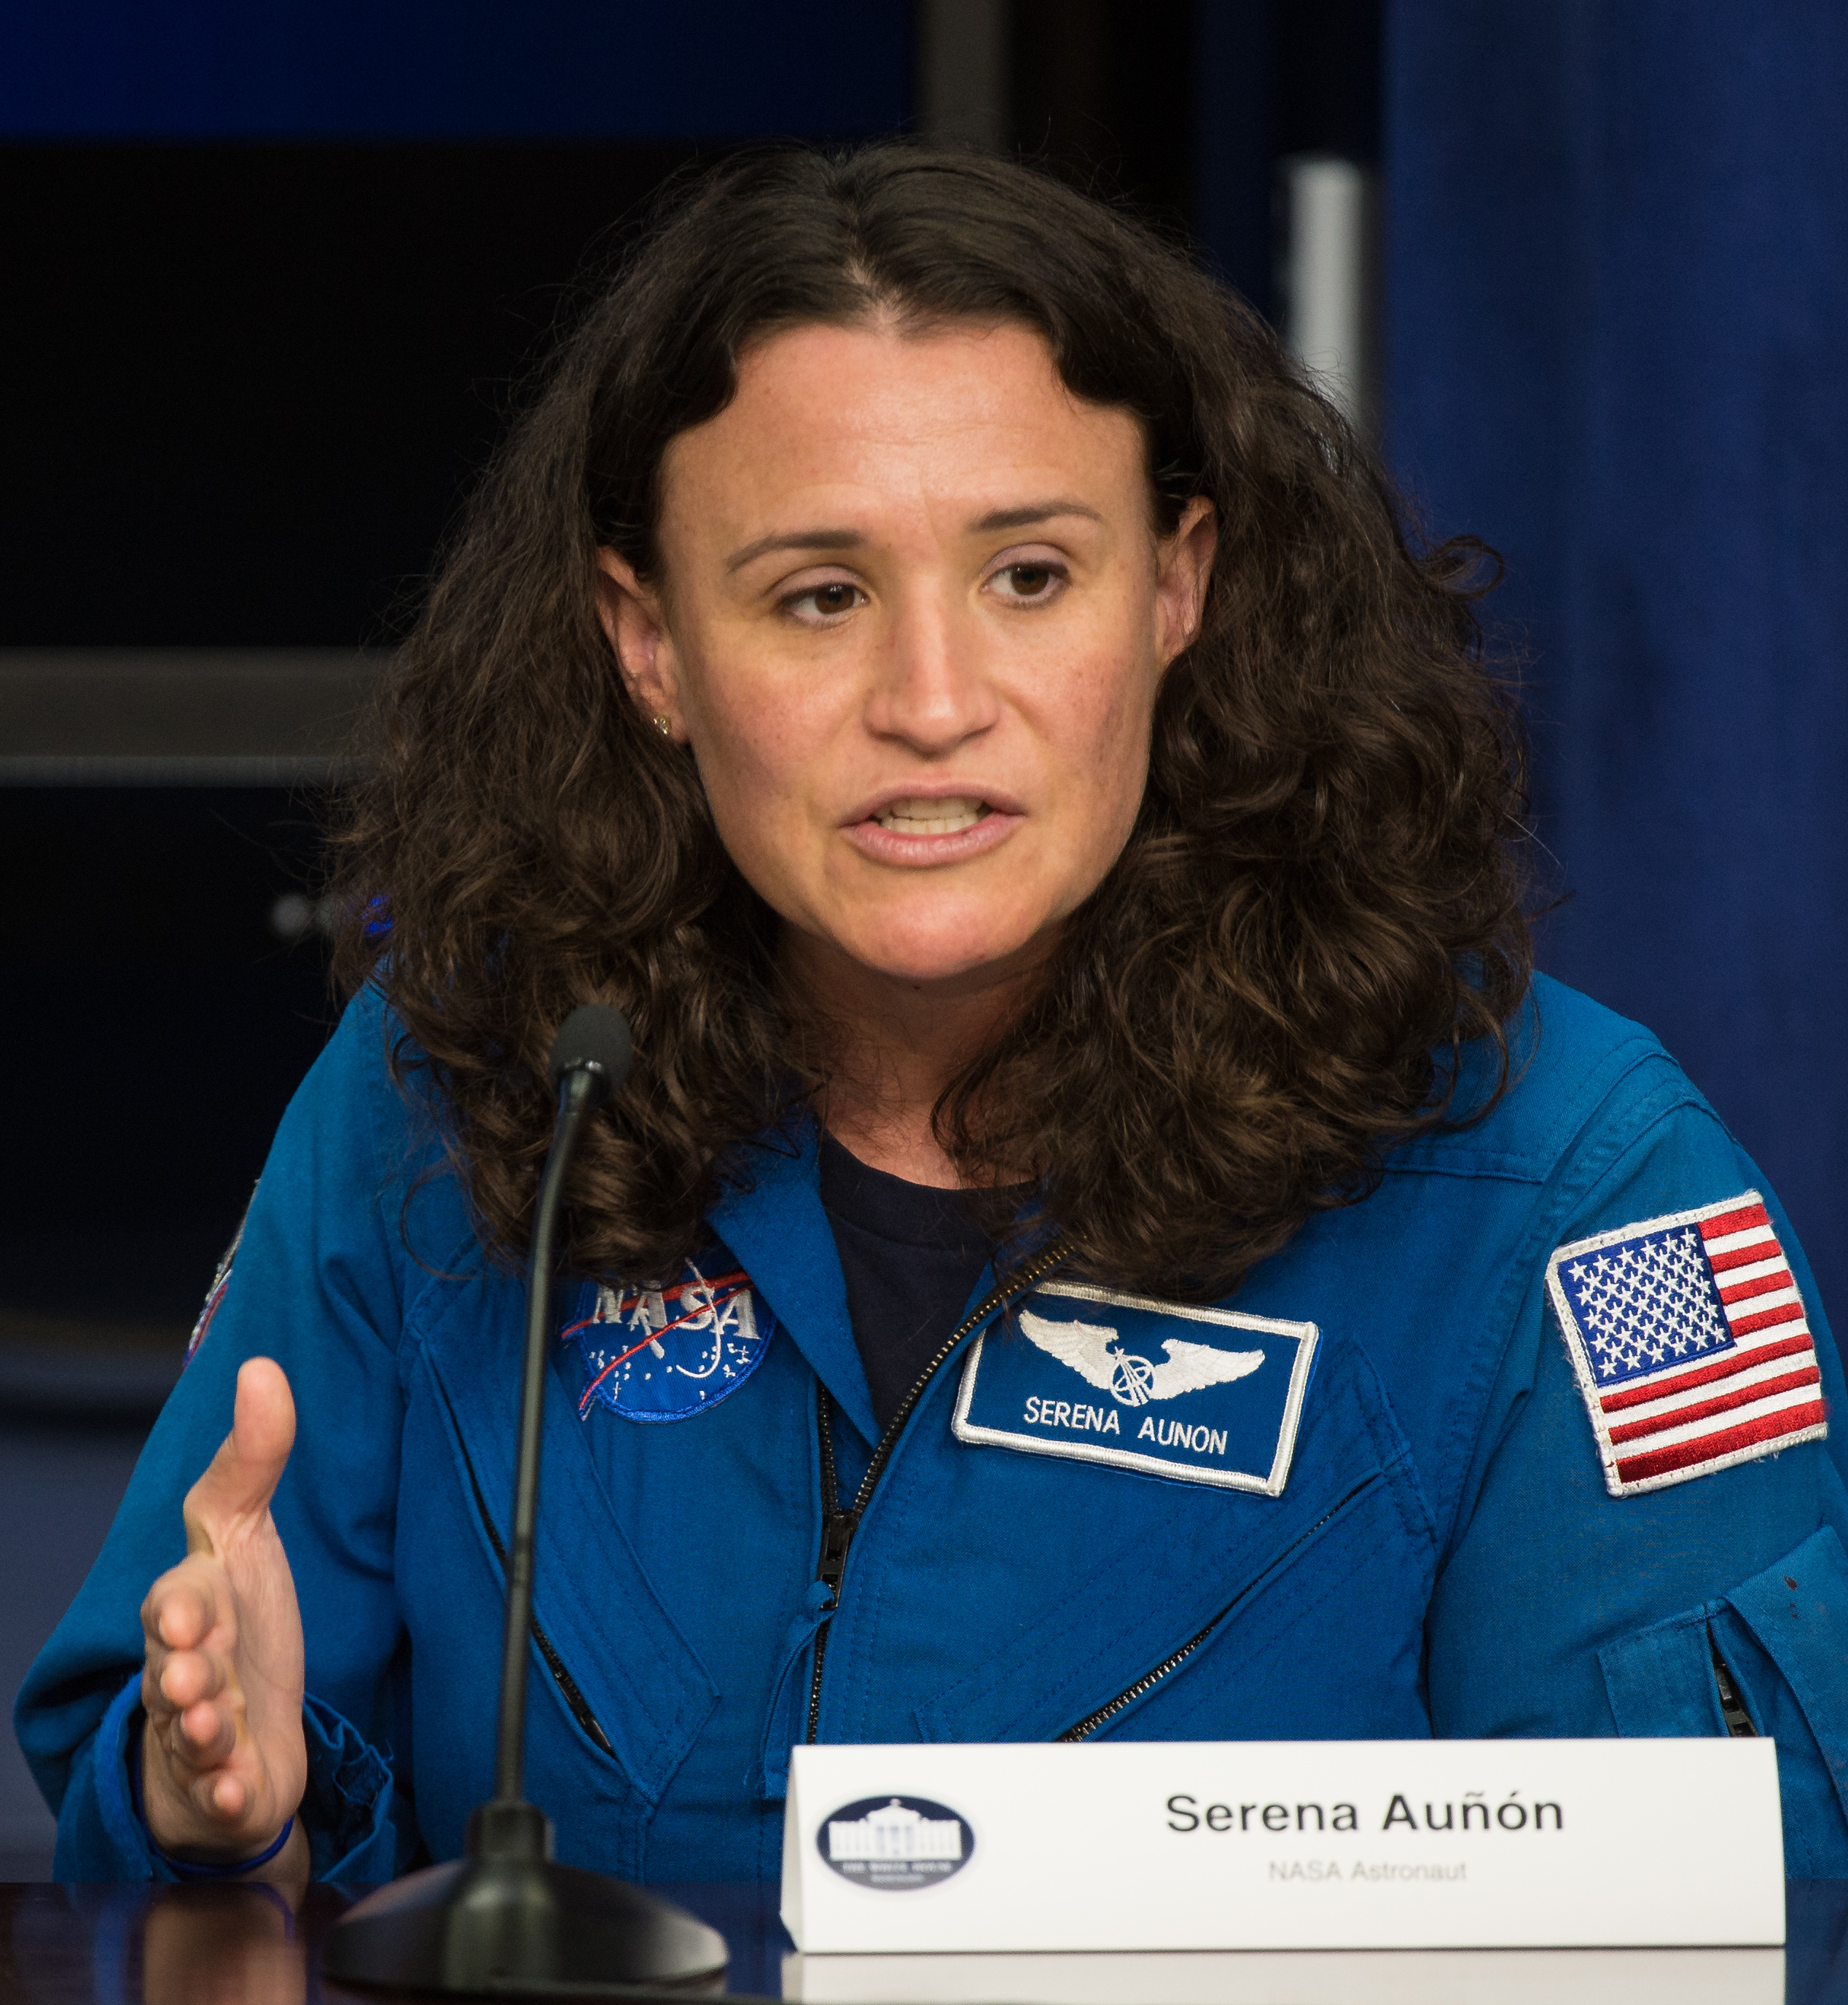 NASA's first Cuban-American astronaut will enter space in 2018